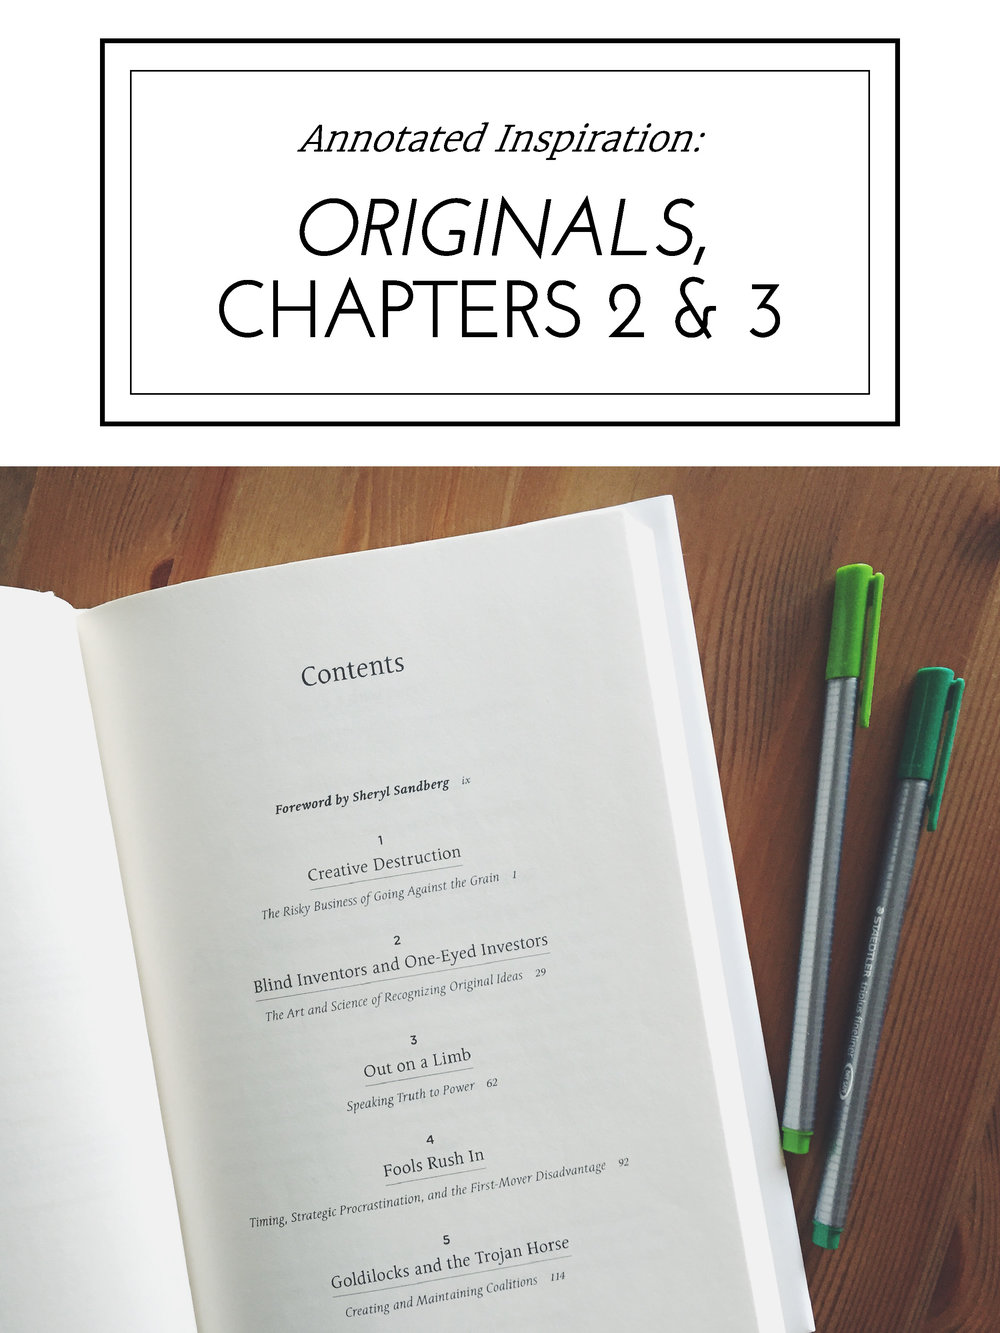 Annotated Inspiration: Adam Grant's Originals, Chapters 2 & 3